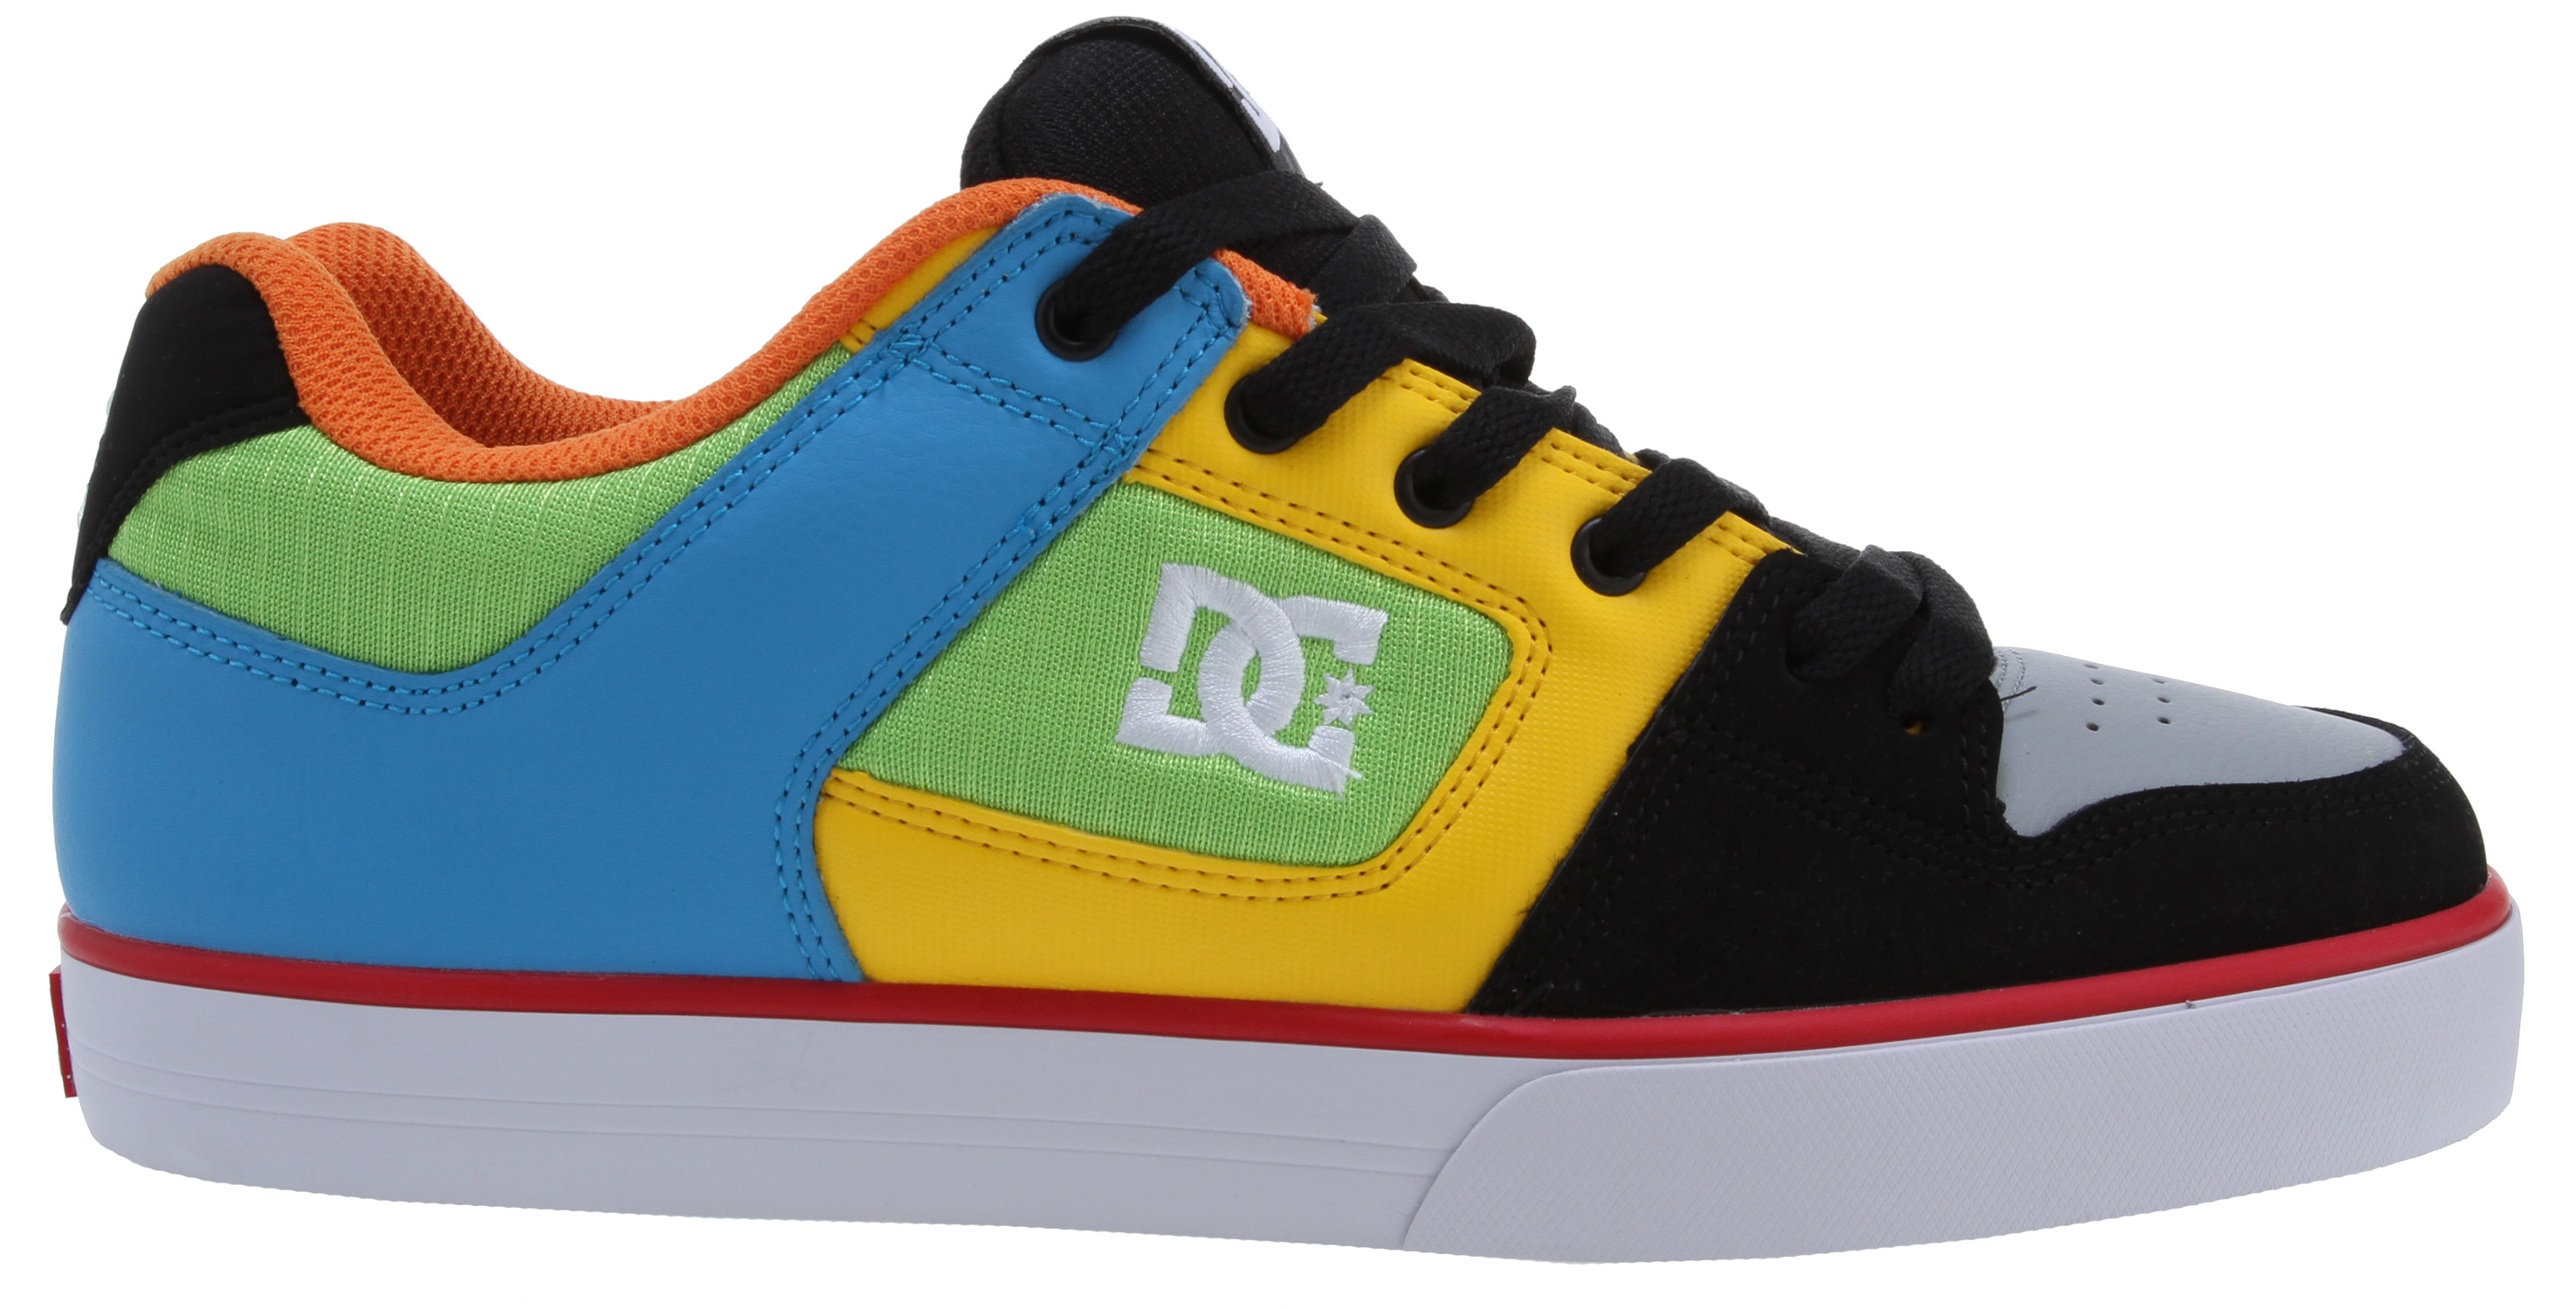 "Skateboard Raw and uncut, the Pure has an upper built from durable suede, nubuck, or leather. The tongue and heel collar are foam padded for comfort and support. The upper also features vent holes for breathability, as well as metal lace eyelets. The performance-wrap cup sole incorporates DC's DGT rubber for durability and grip. Key Features of the DC Pure Skate Shoes: Foam Padded Tongue and Collar for added comfort and support Vent holes in upper for increased air flow Metal eyelets Performance wrap cup sole, DC's exclusive construction technique DGT Dynamic Grip Technology Abrasion-resistant sticky rubber outsole with DC's trademarked ""Pill Pattern"" bottom - $41.95"